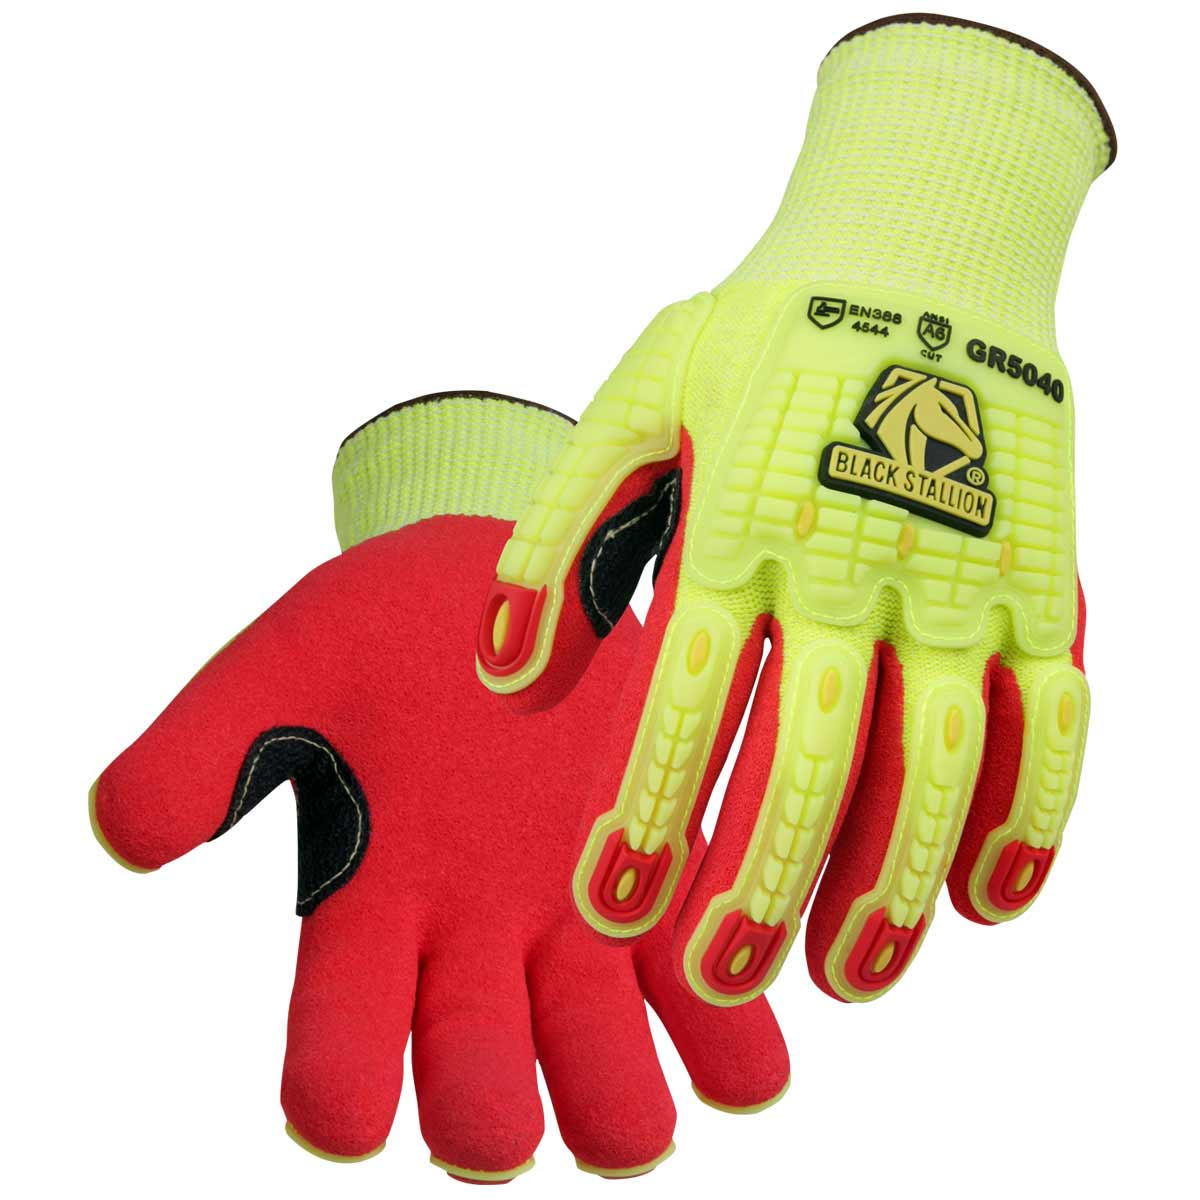 A6 CUT RESISTANT AND IMPACT SANDY NITRILE COATED HI-VIS HPPE BLEND GLOVE. Pack 6. Small. GR5040-HR-SML